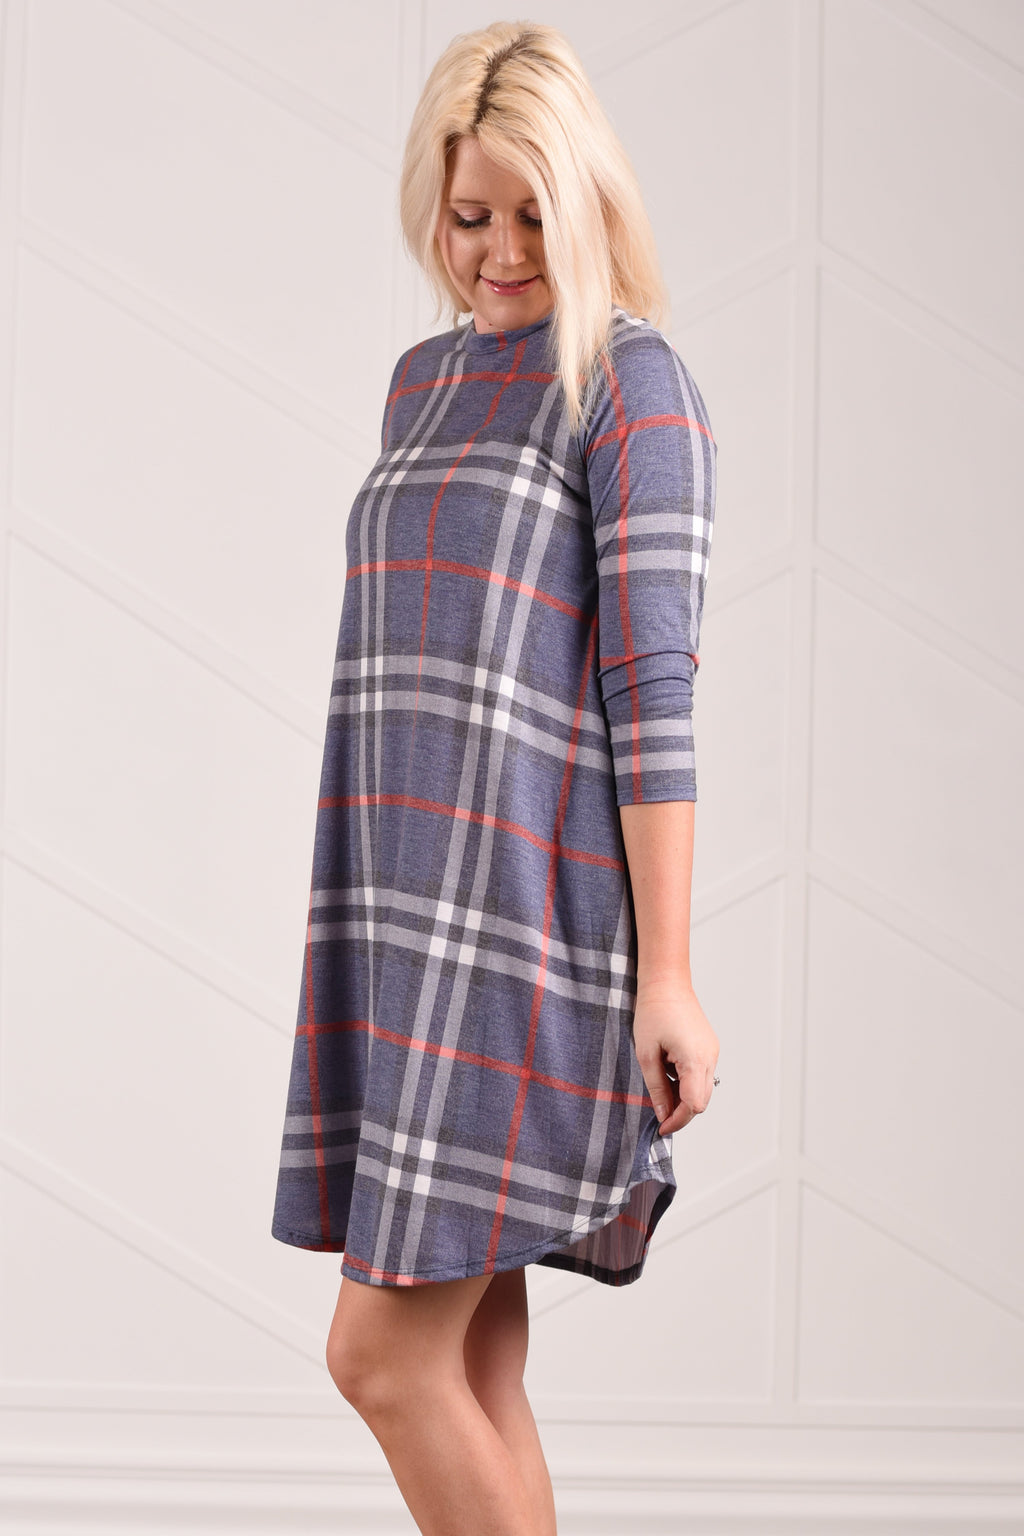 Fae Plaid Dress - Strong Confident You